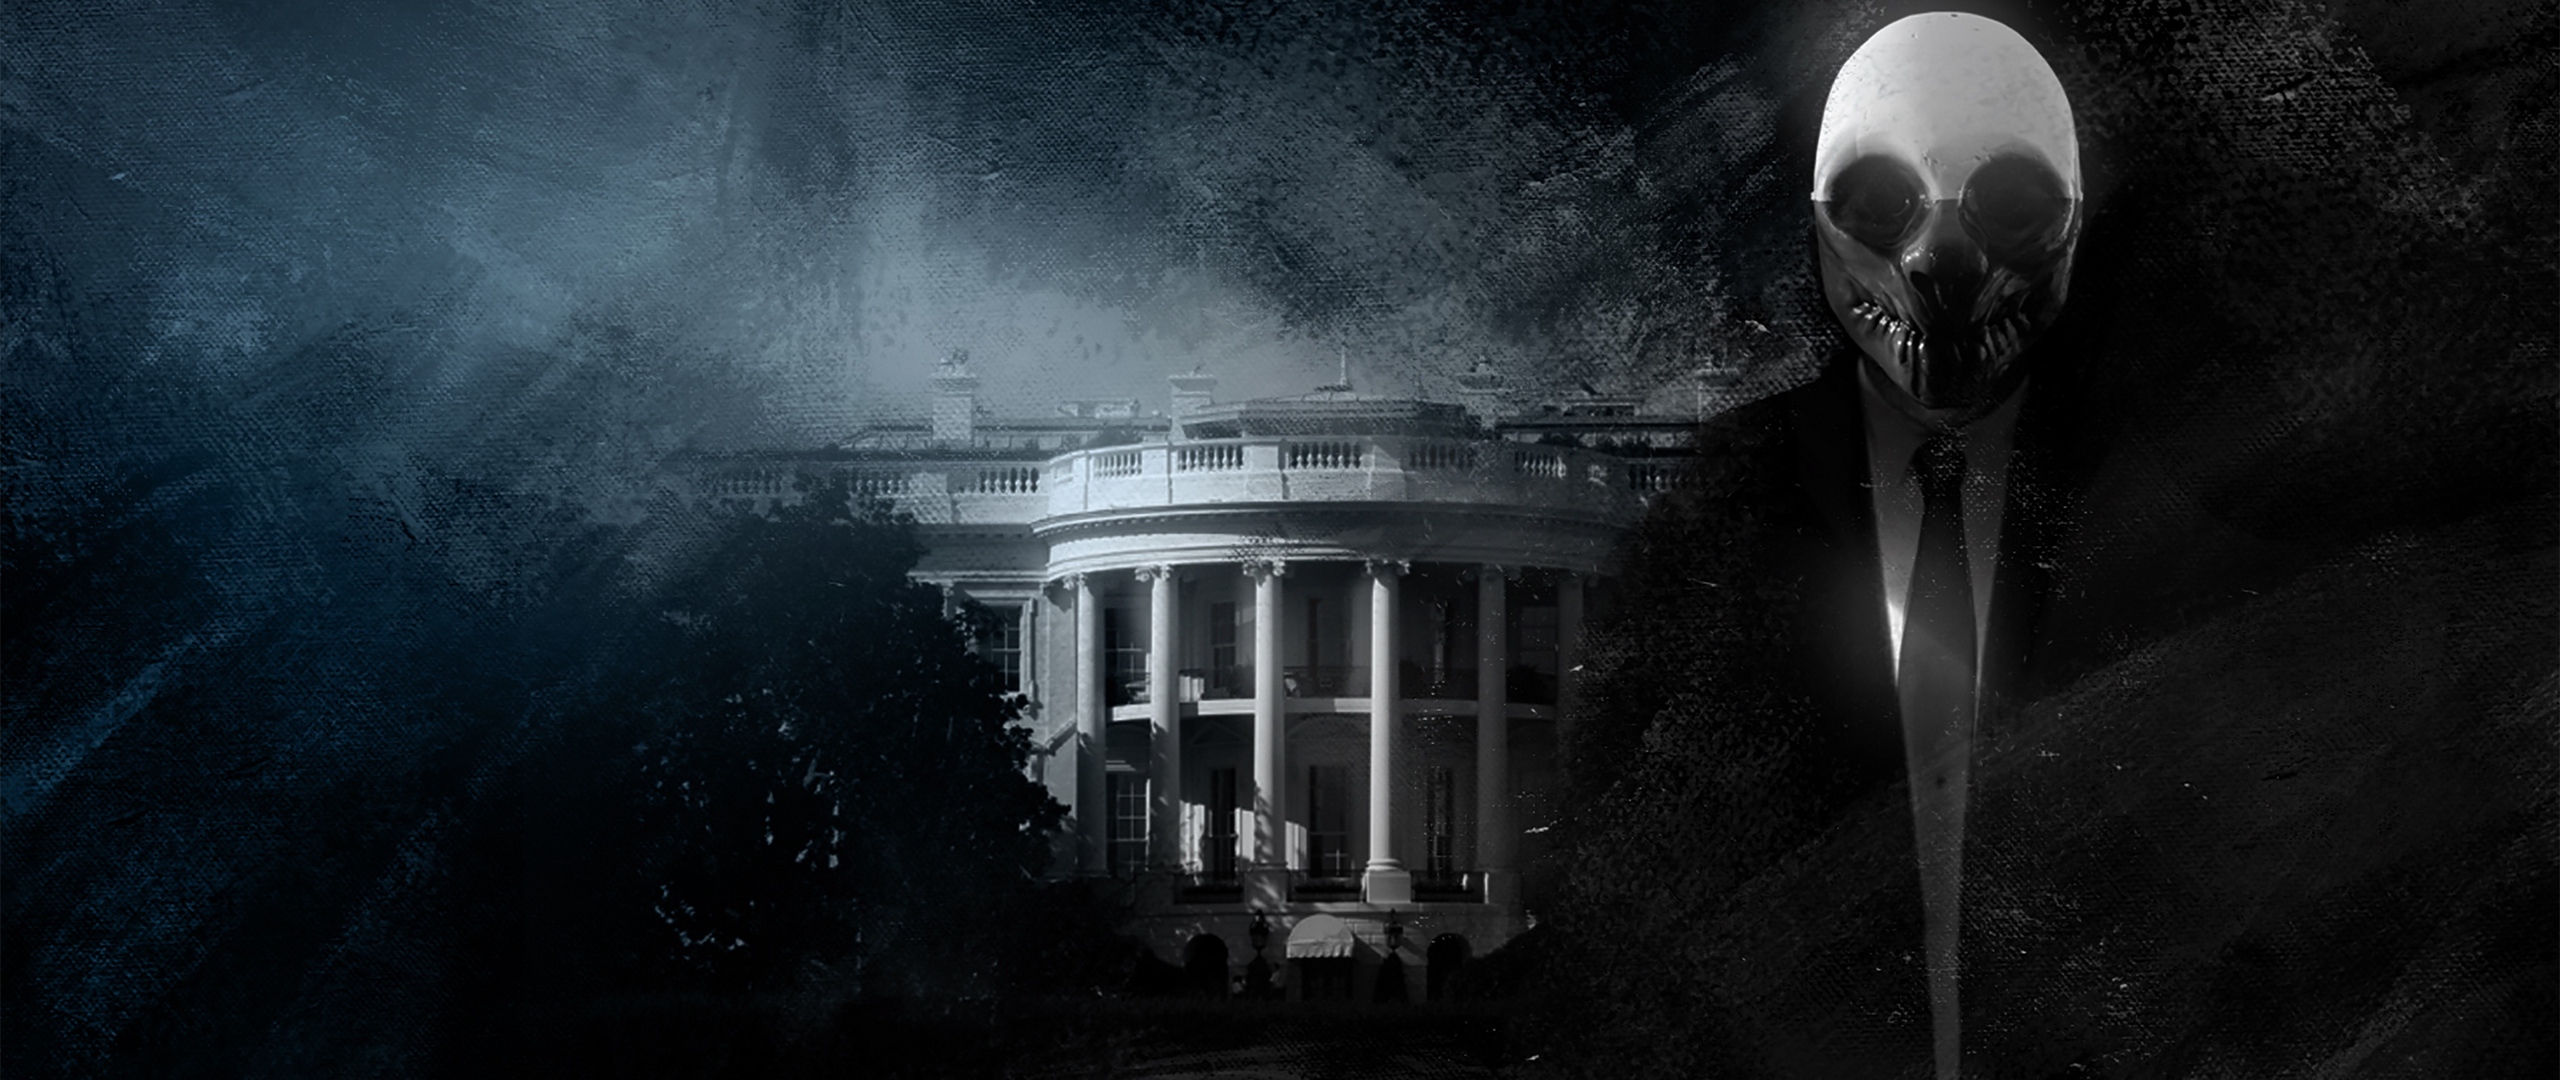 Wallpaper Payday 2, Overkill Software, White House, - White House - HD Wallpaper